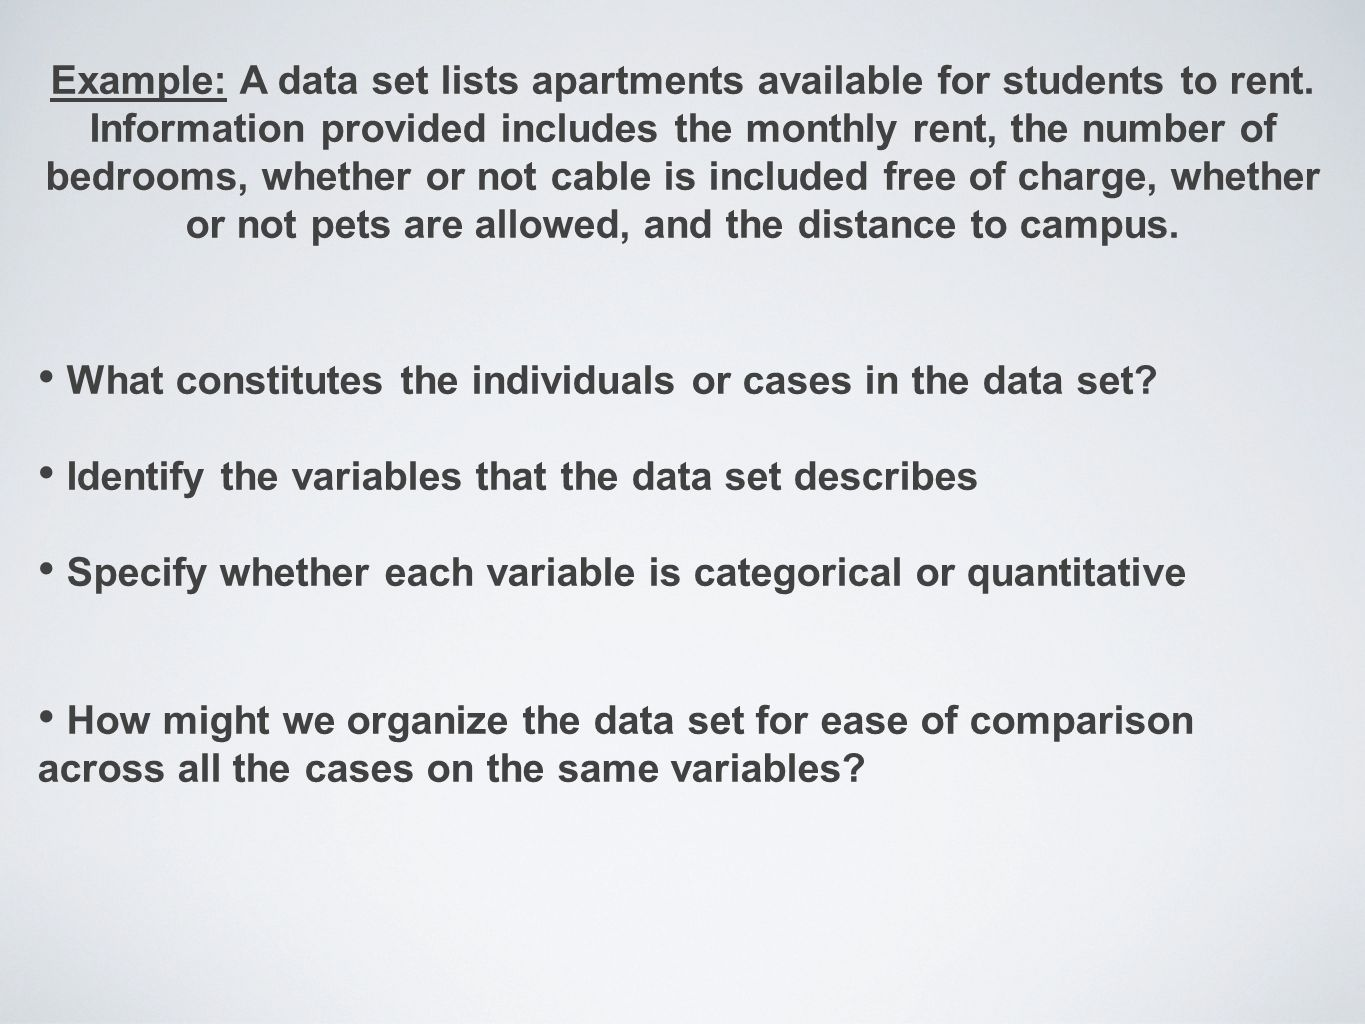 Example: A data set lists apartments available for students to rent